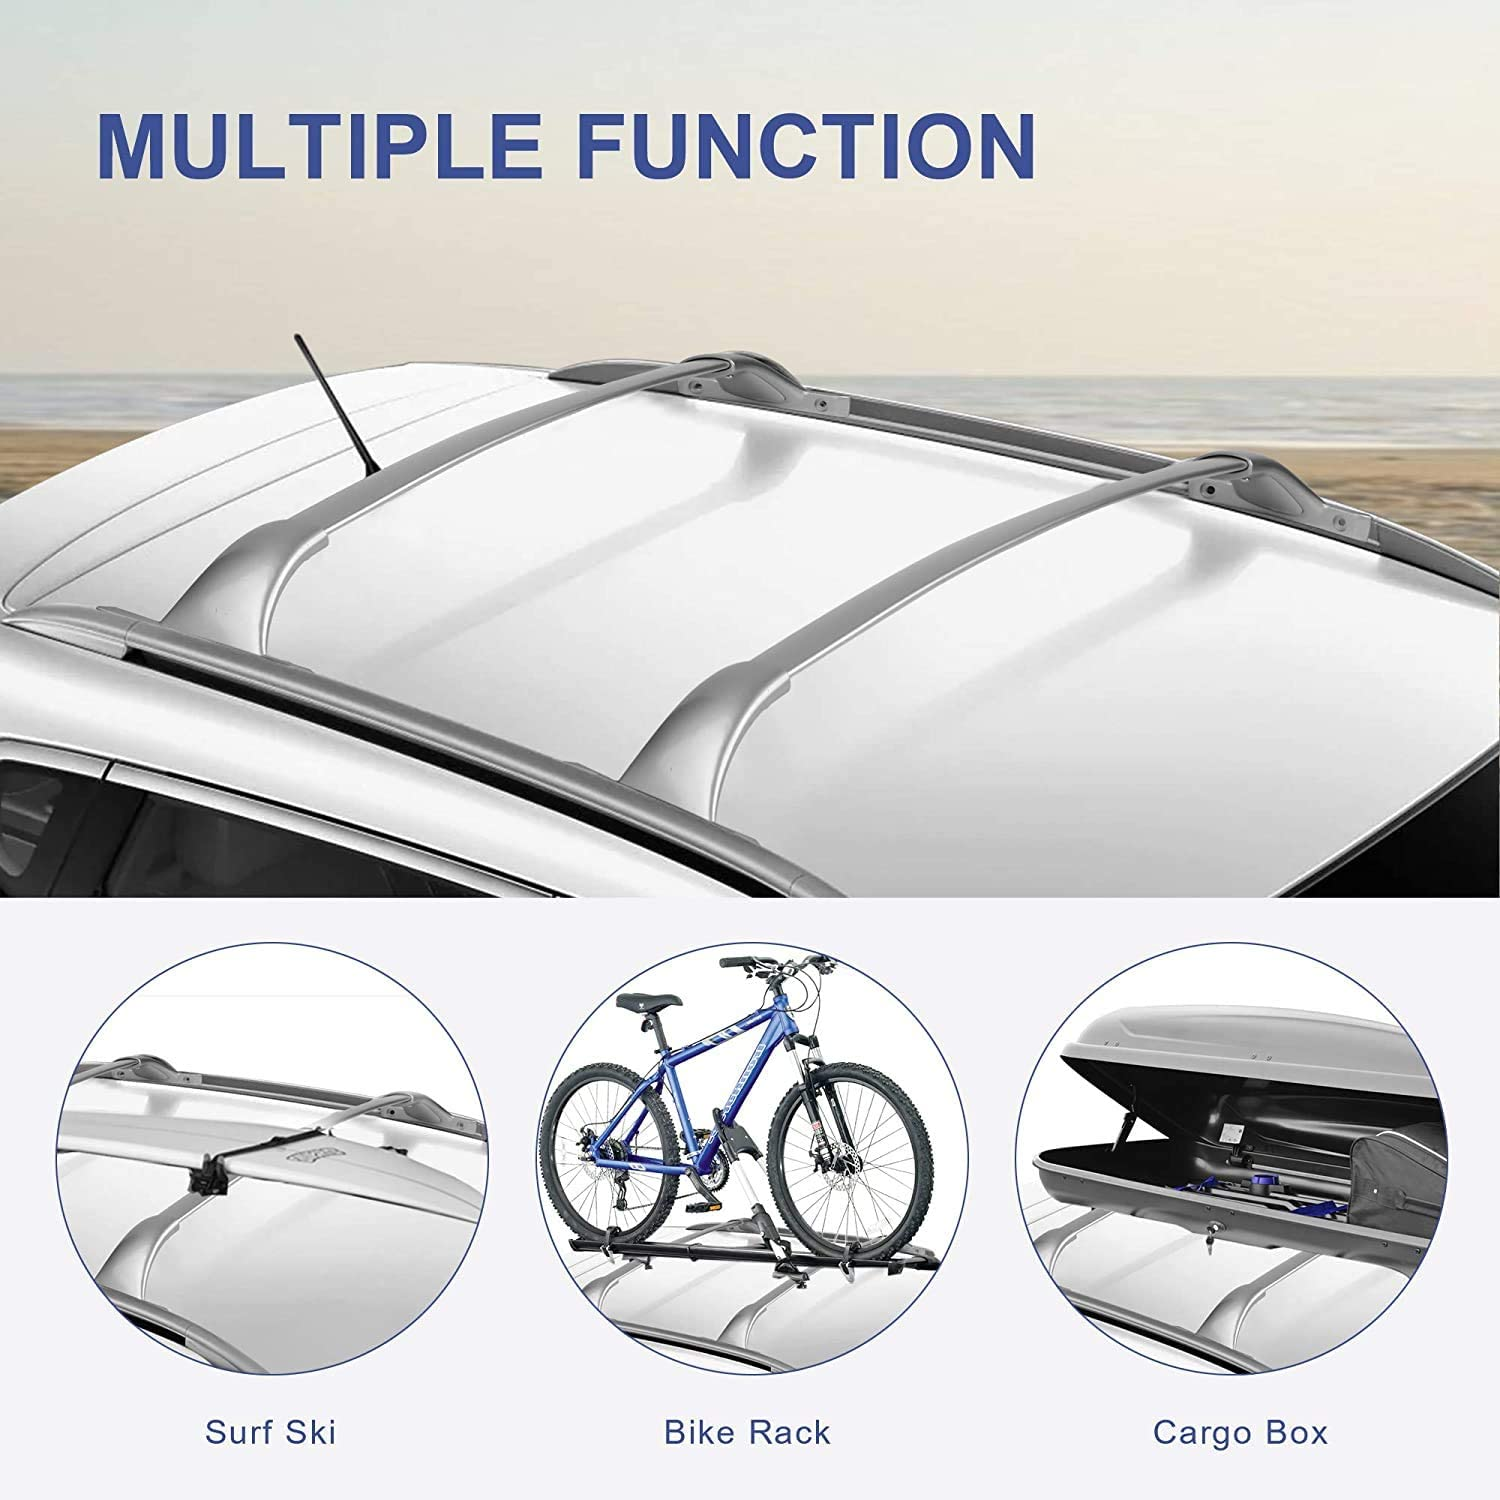 Mosatp Roof Rack Fit for Compatible with NIS san Rogue 2014-2019 Cargo Carrier Lightweight Aluminum Cross Bars Rooftop Bag Luggage Crossbars Max Load 150lb Carry Canoe Kayak Bike Skiboard Surfboard